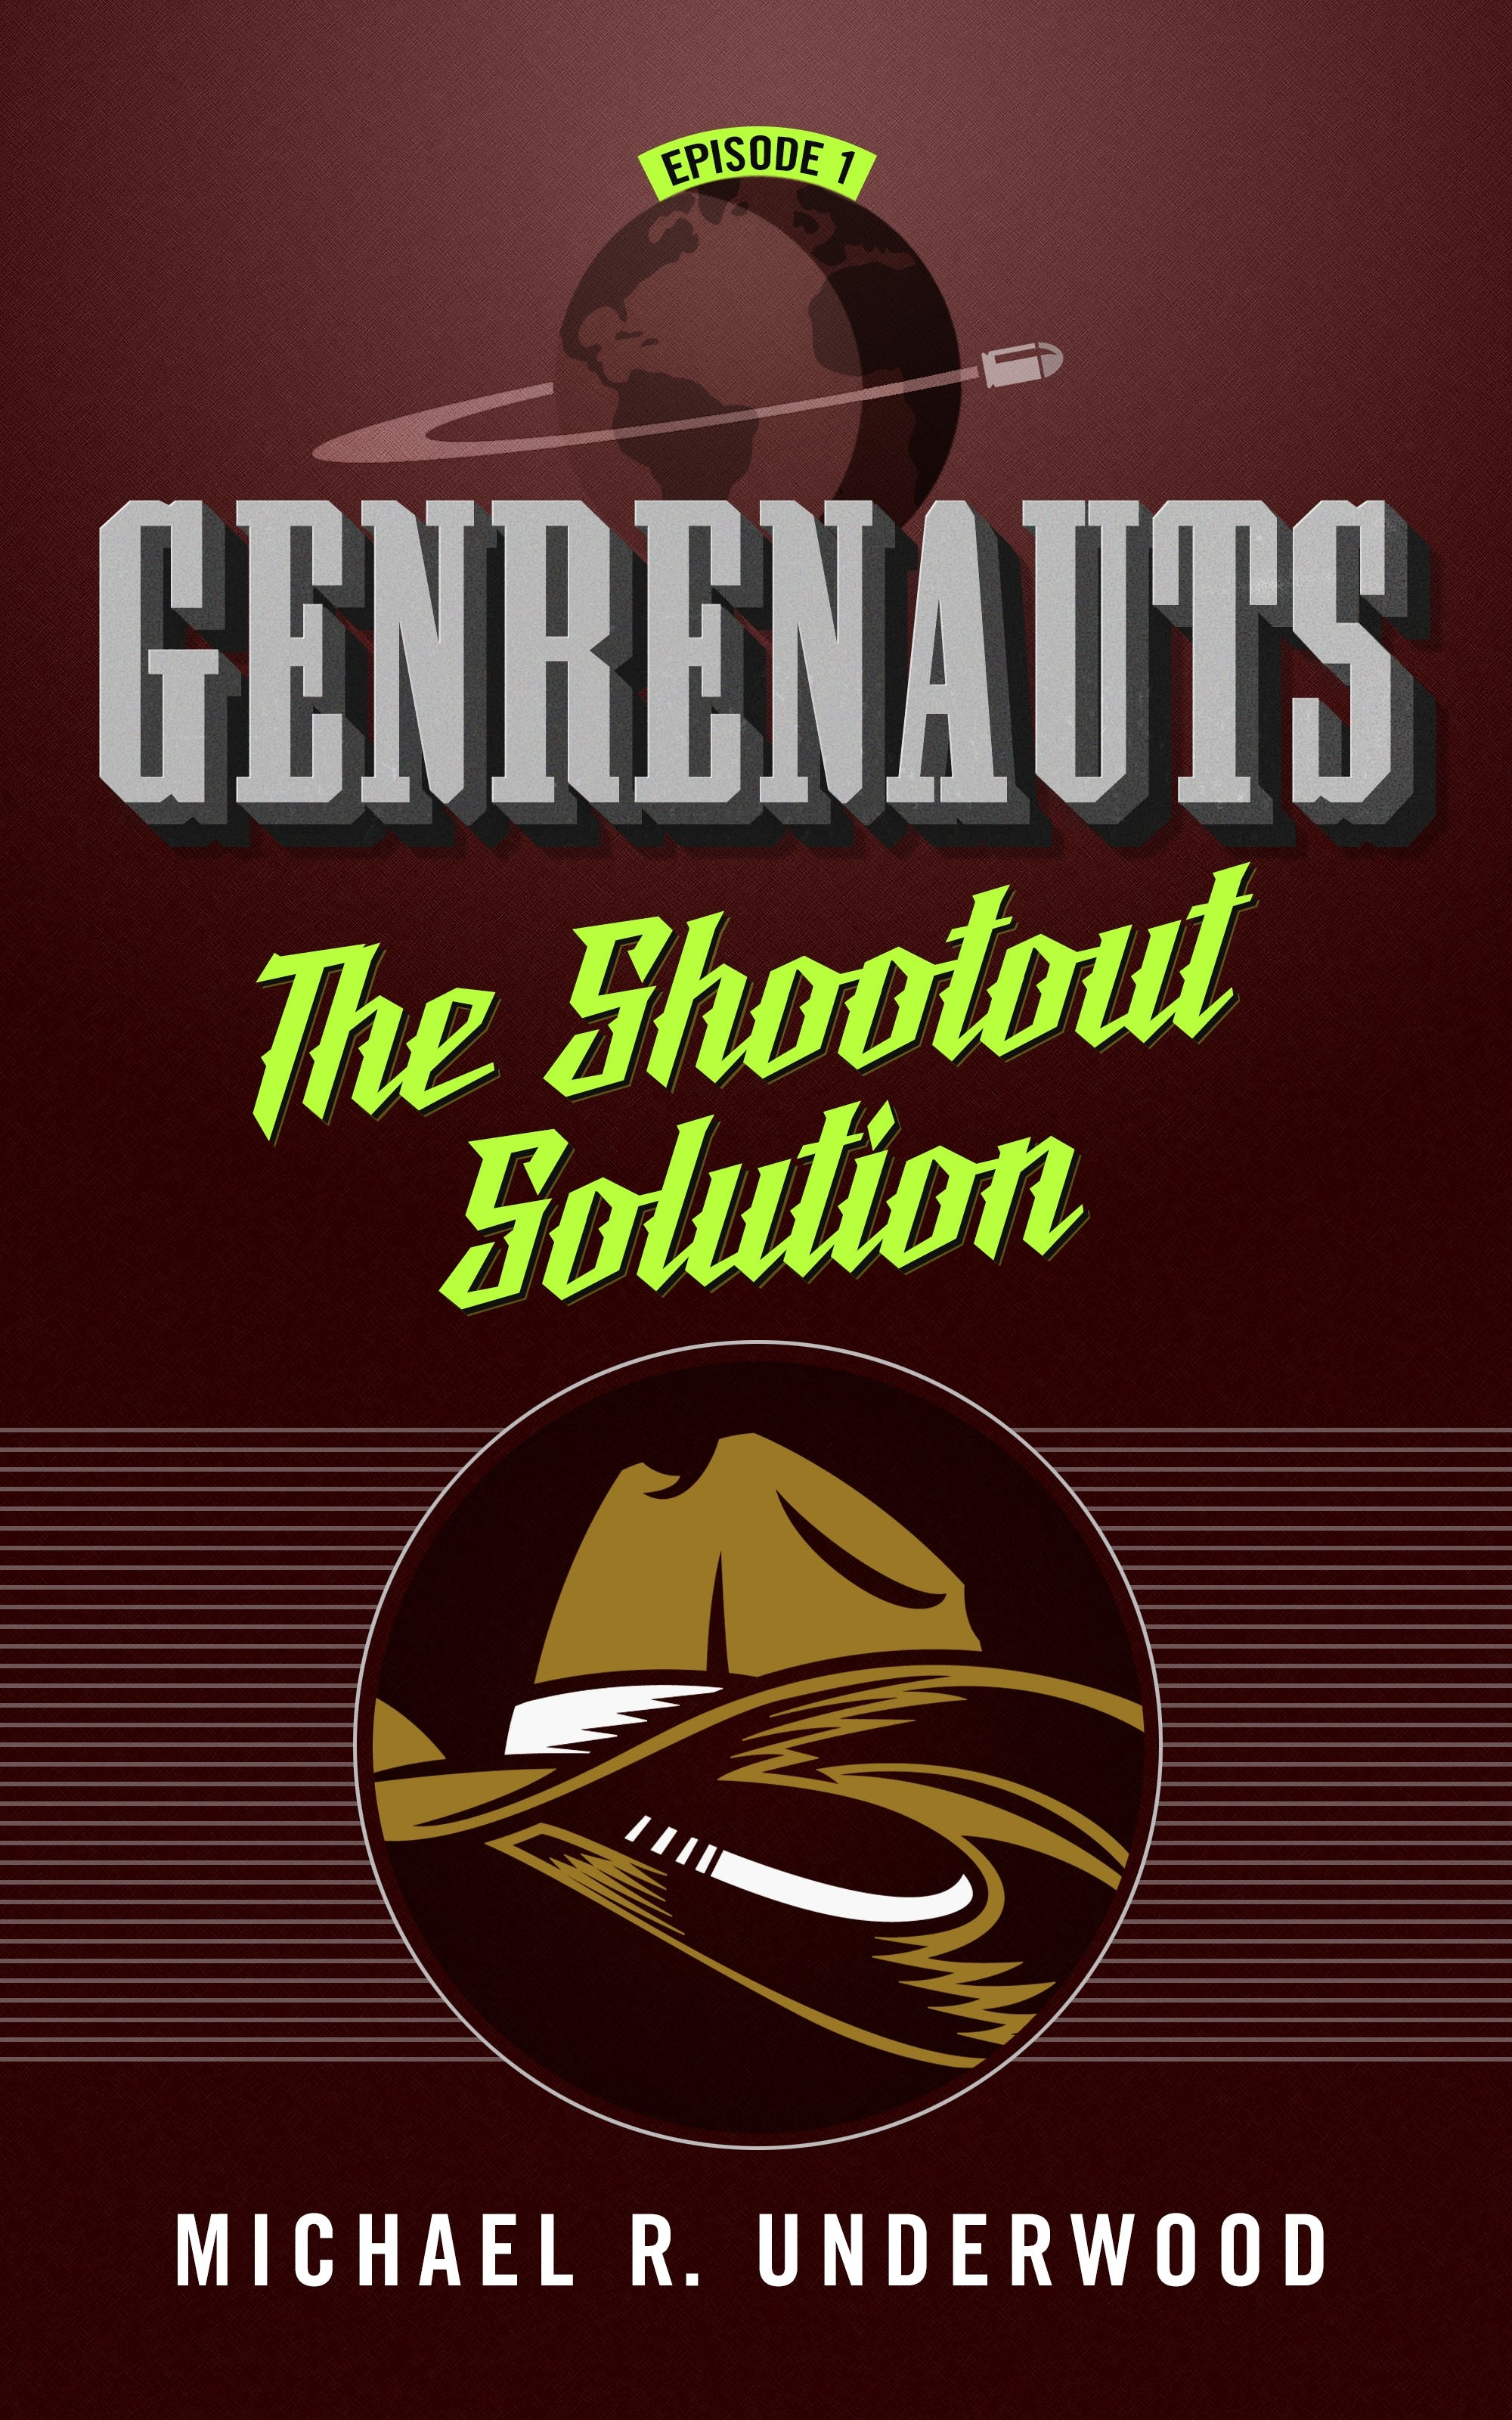 Image of The Shootout Solution